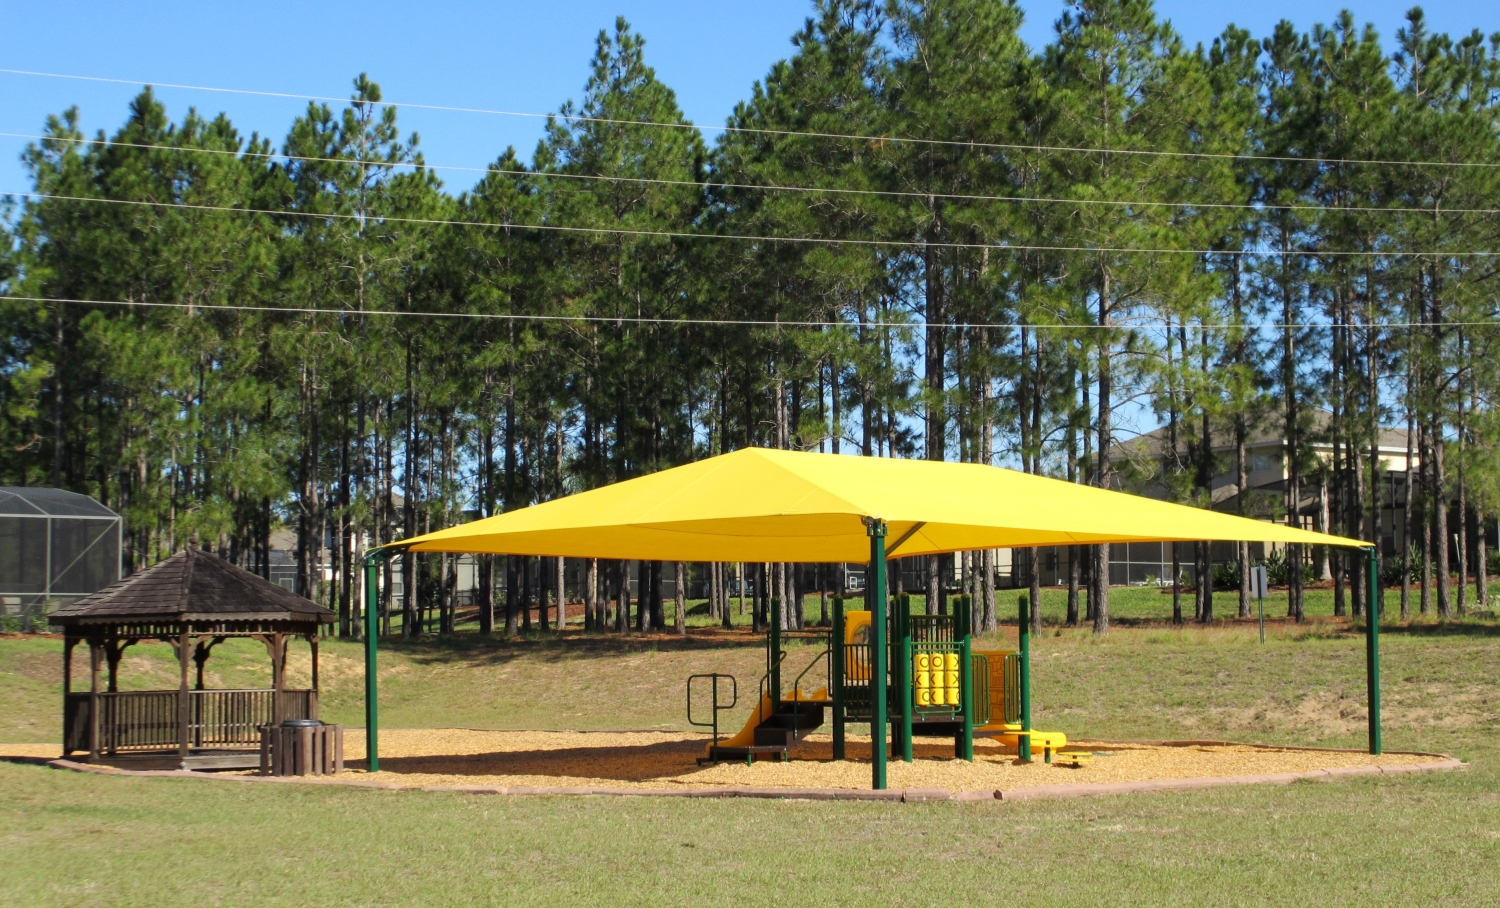 Calabay Parc Children's Play Area